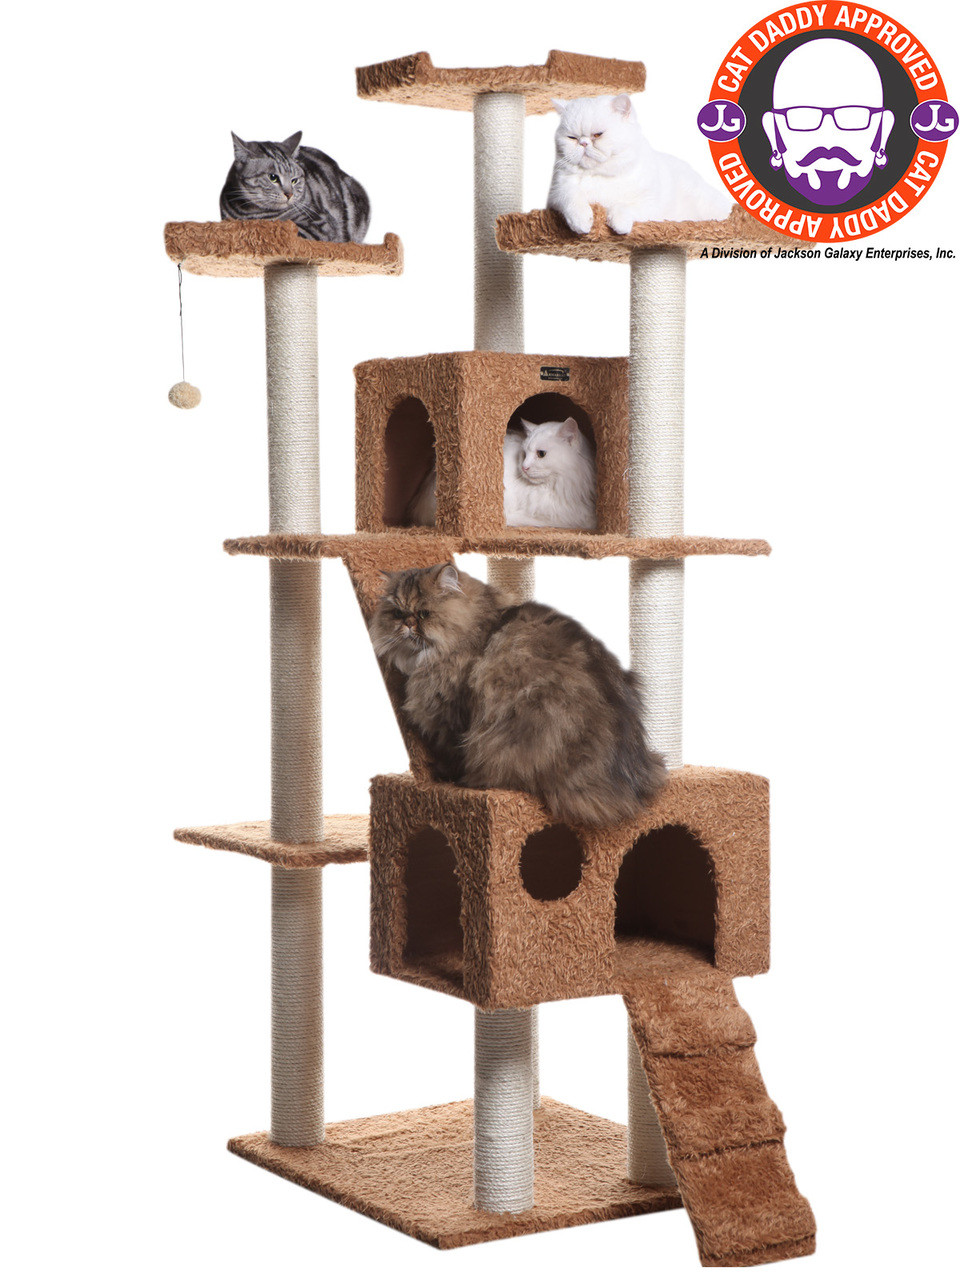 Classic Cat Tree A7407 Armarkat Online Store